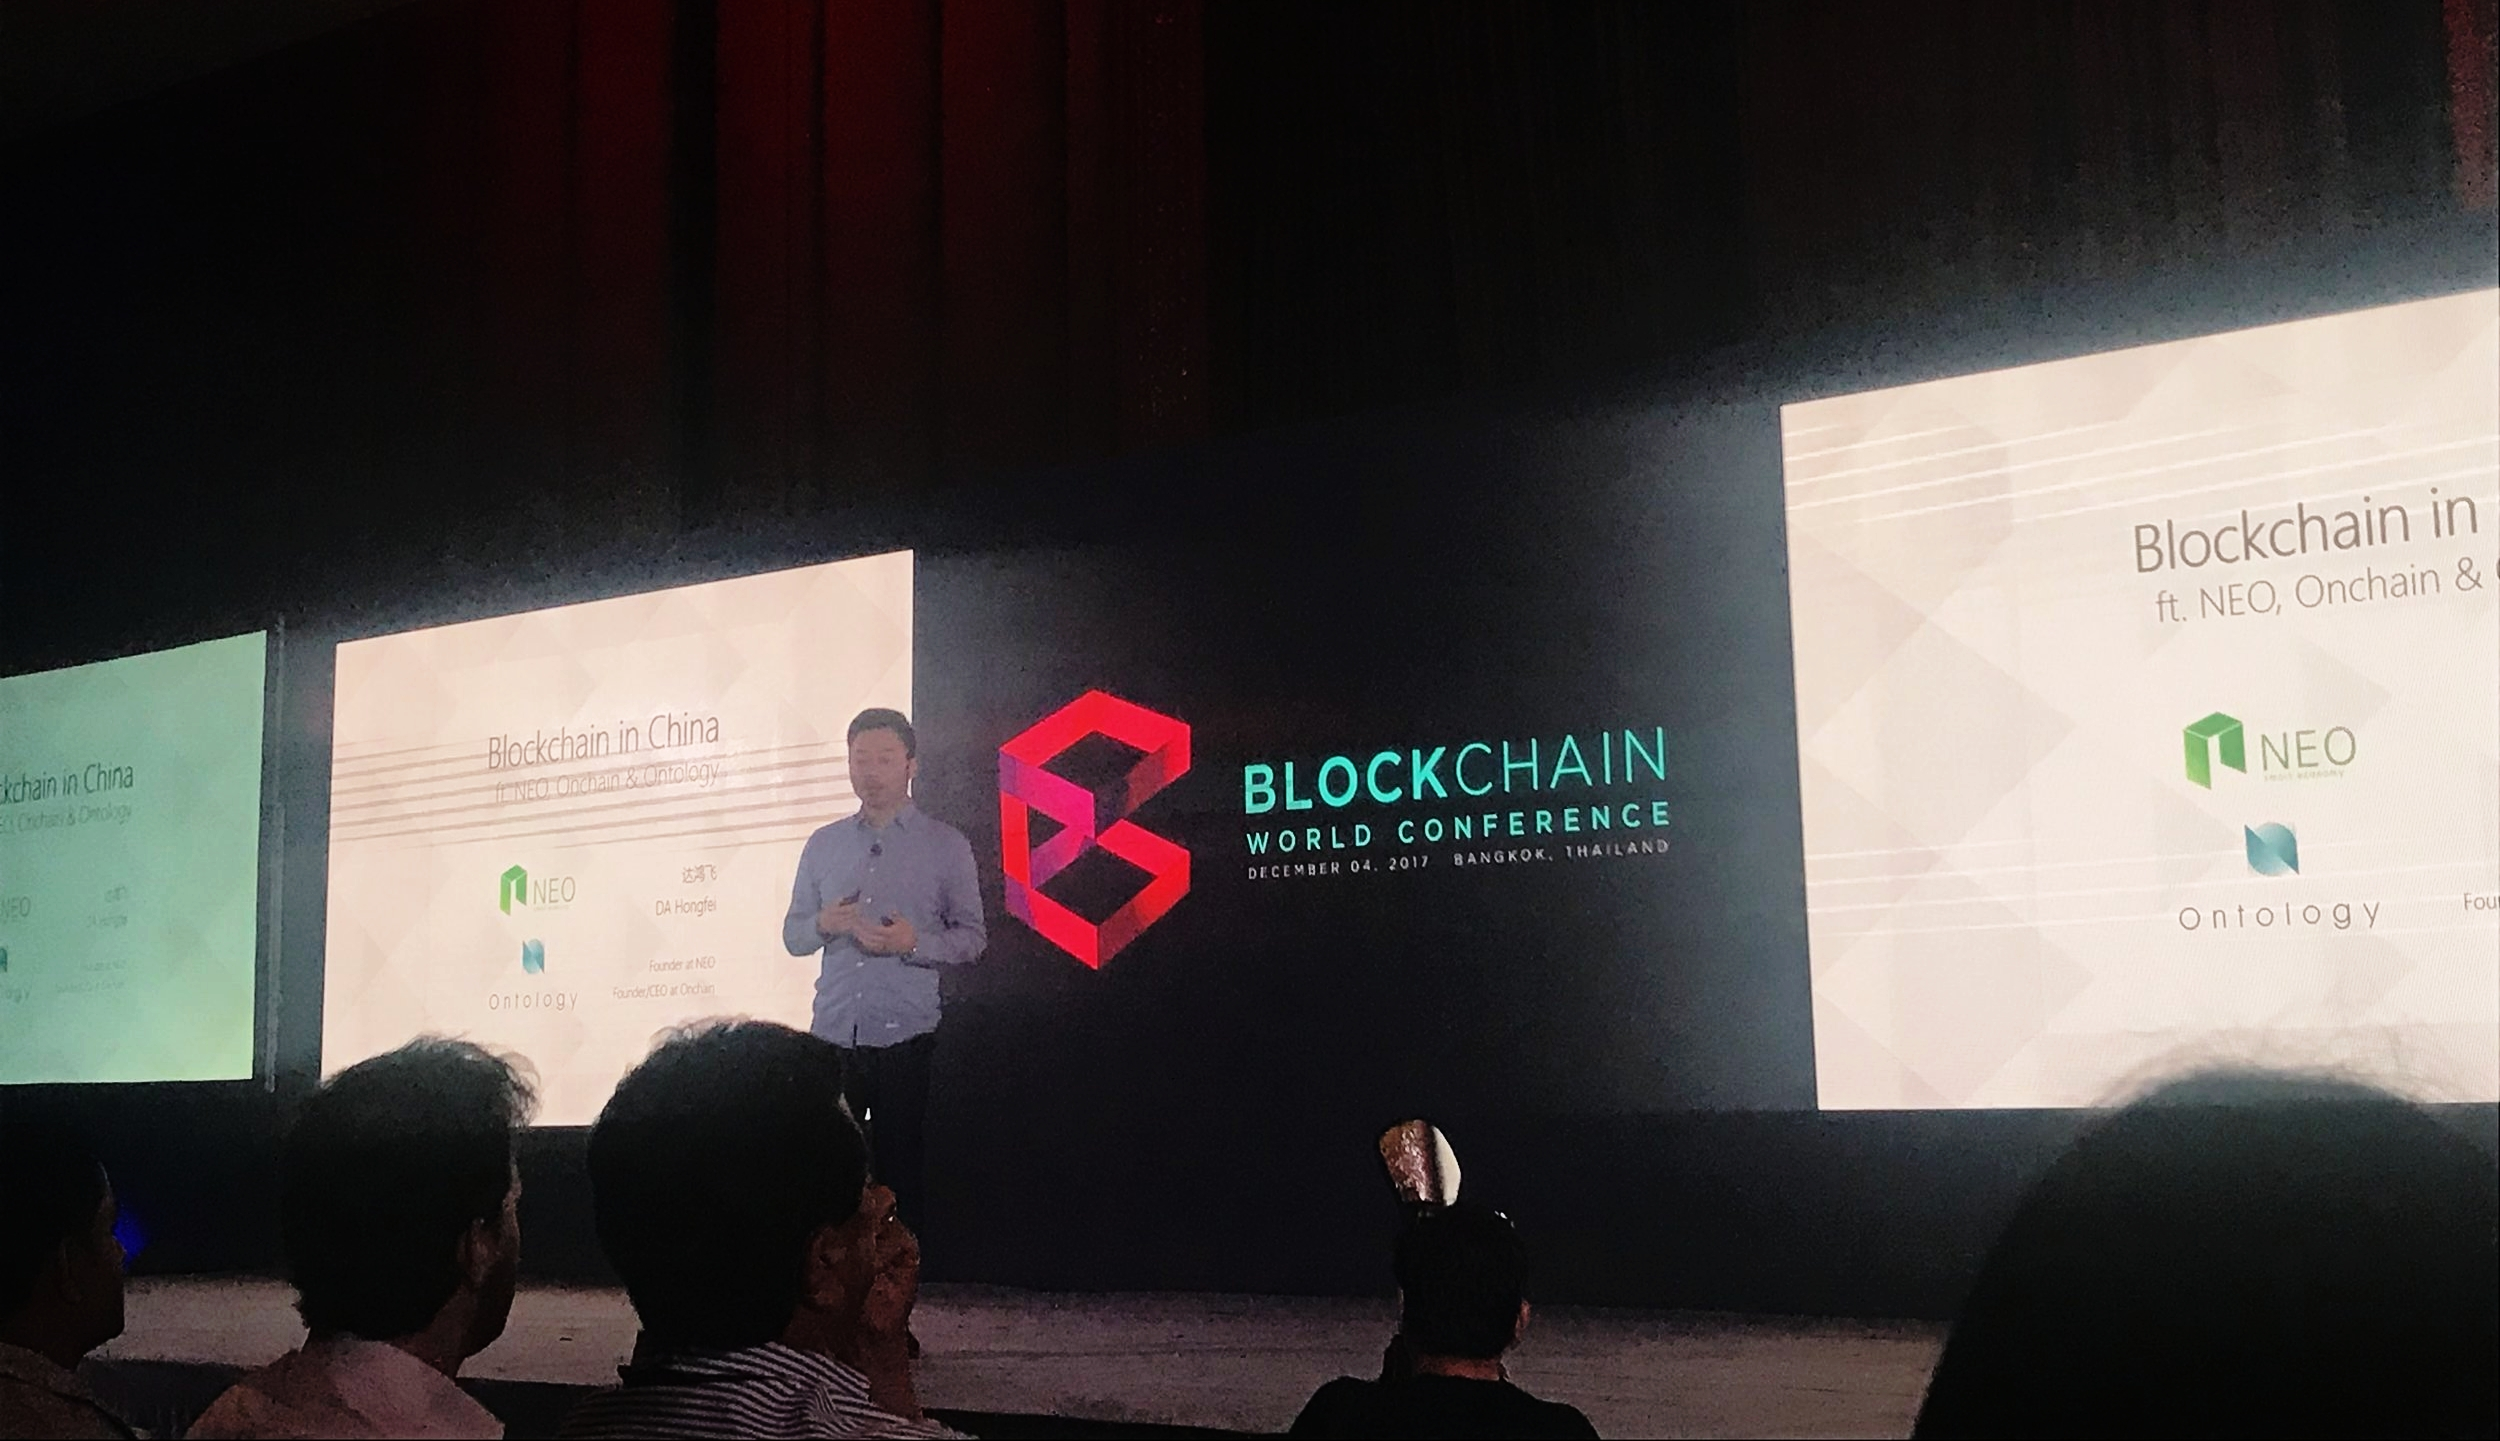 I had the chance to attend the  Blockchain World Conference in December and got to hear from the leading entrepreneurs, engineers, and investors in the field. Pictured is Da Hongfei, founder of NEO speaking about the state of blockchain in China.